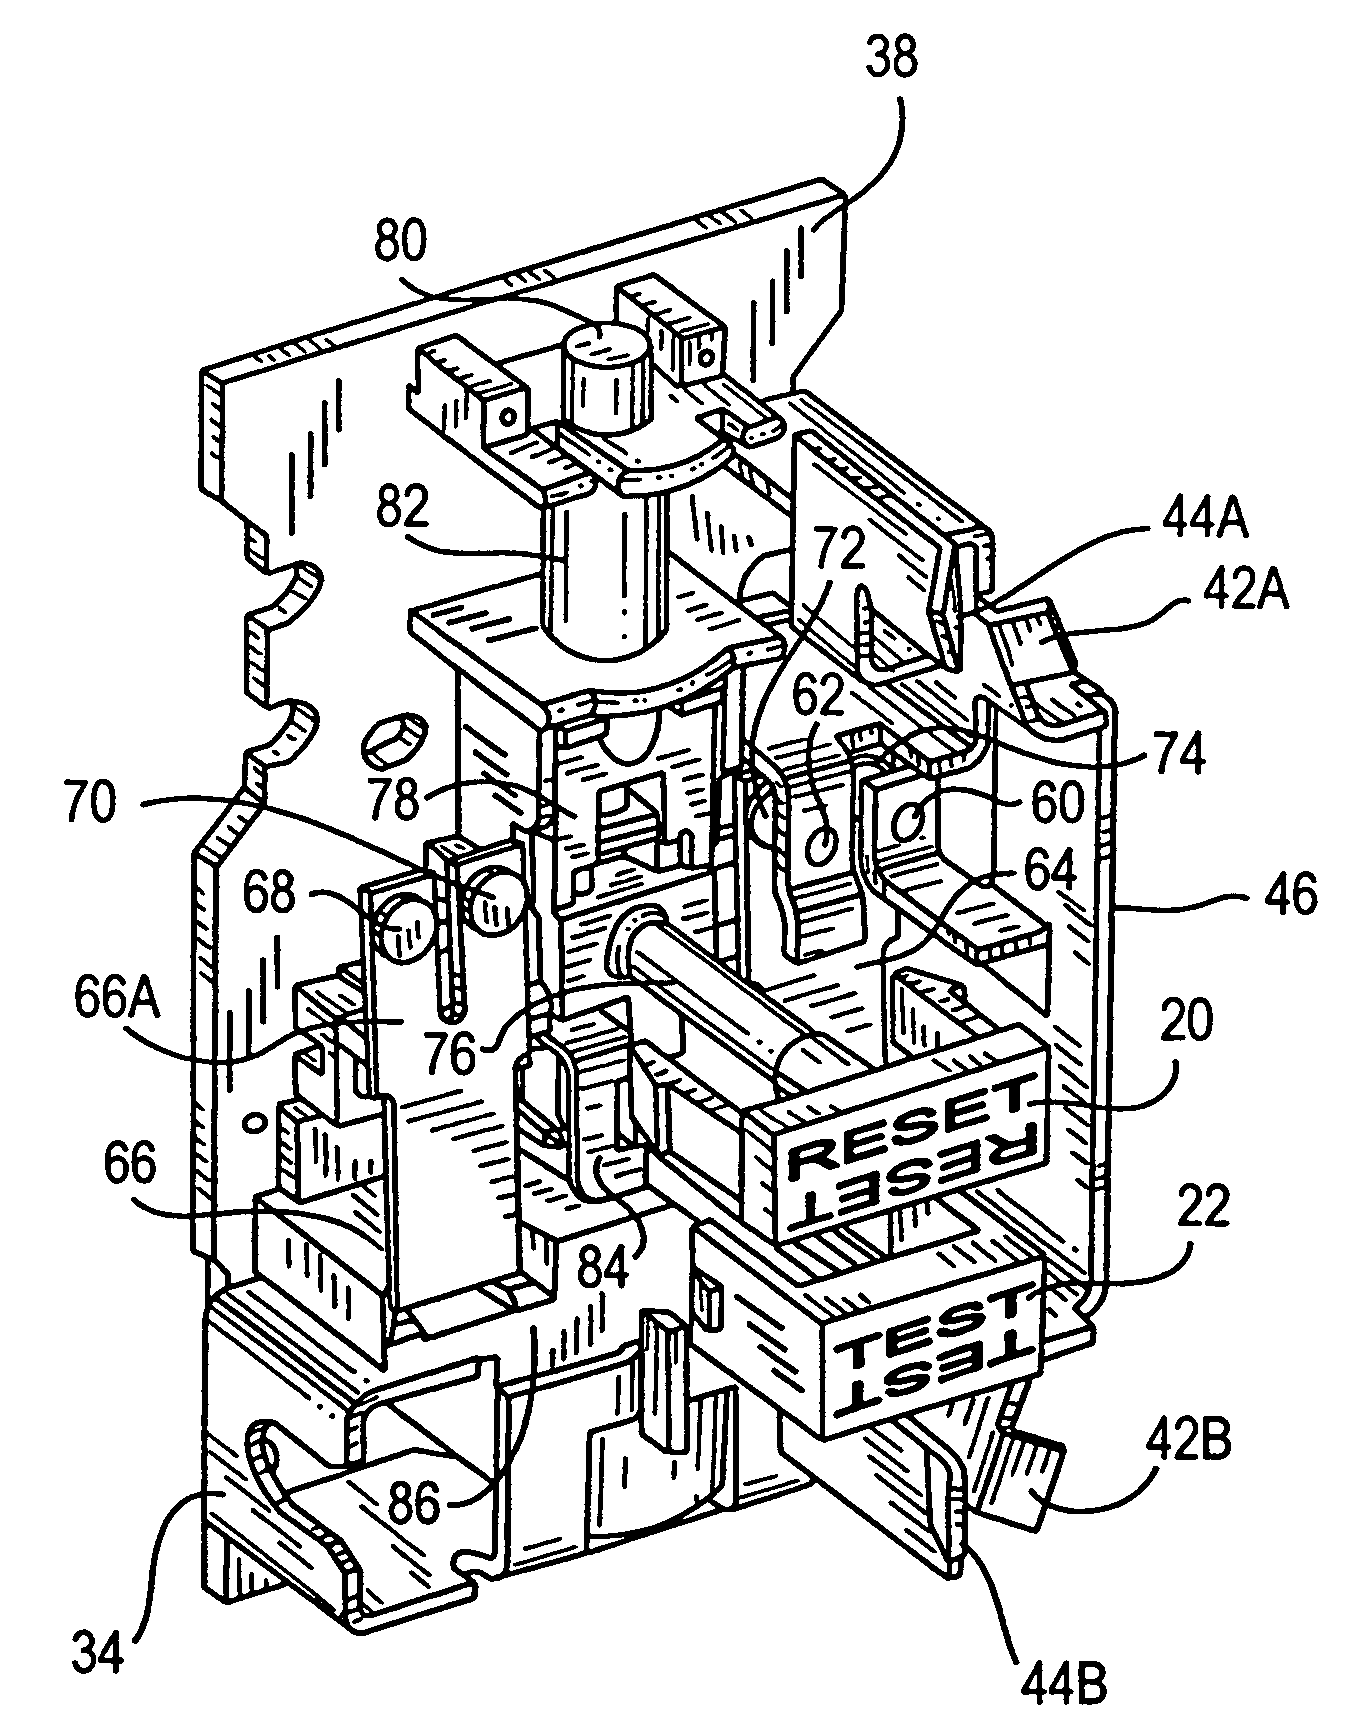 US07737809 20100615 D00000 patent us7737809 circuit interrupting device and system,Wiring A Gfci Circuit